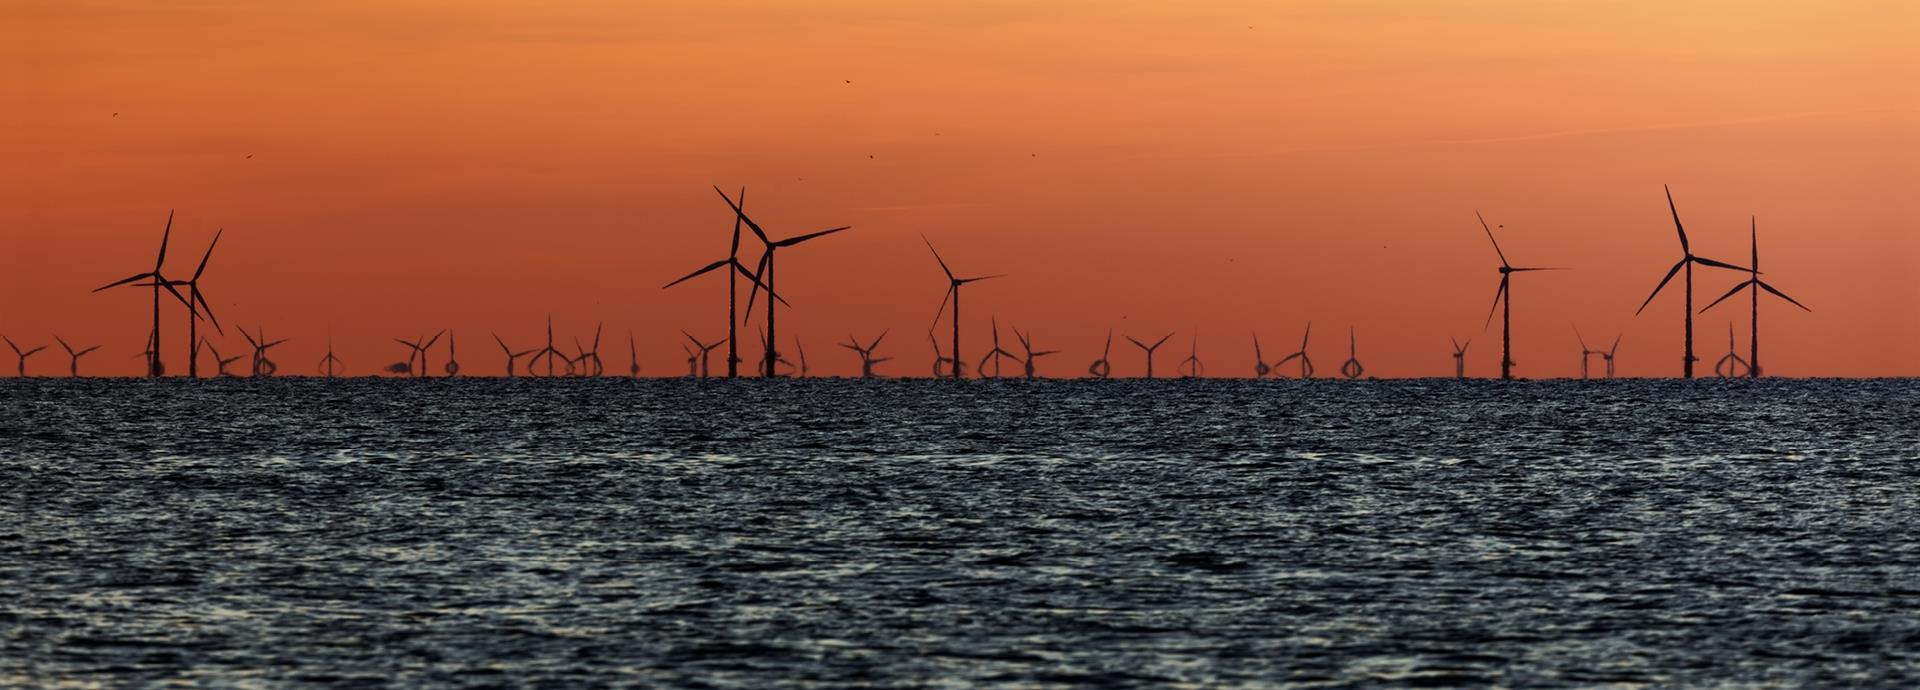 Upgrading OSV to take advantage of wind farm growth